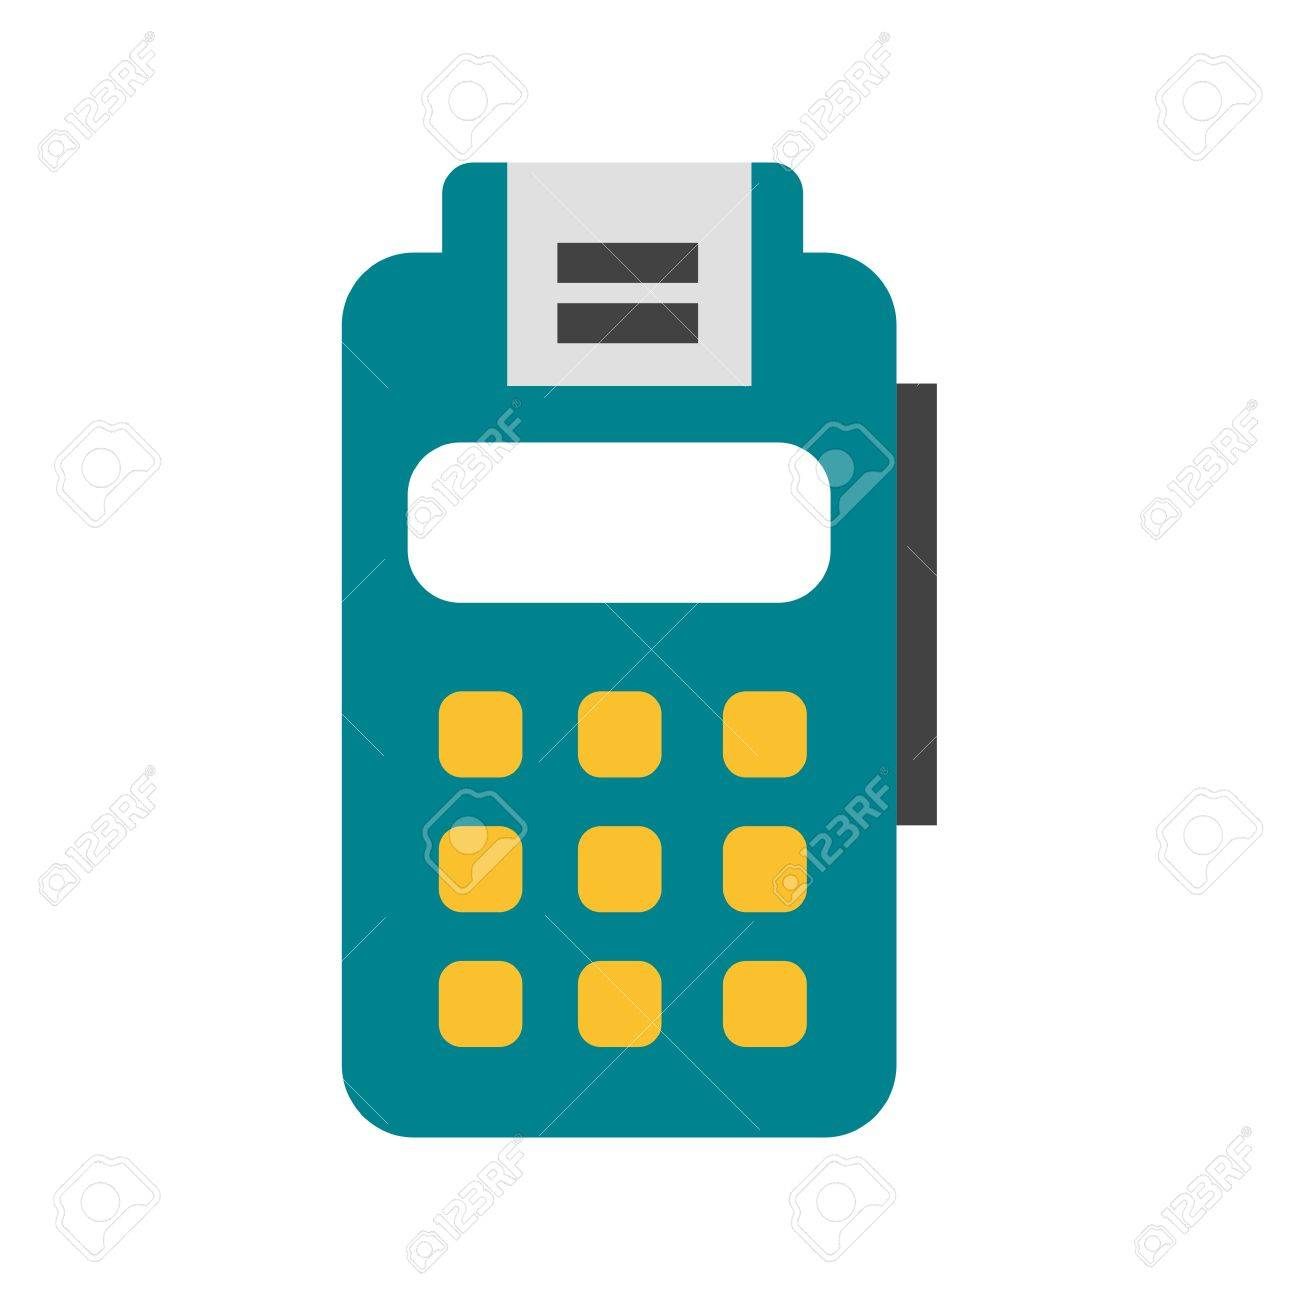 Card, Machine, Credit Icon Vector Image. Can Also Be Used For ...